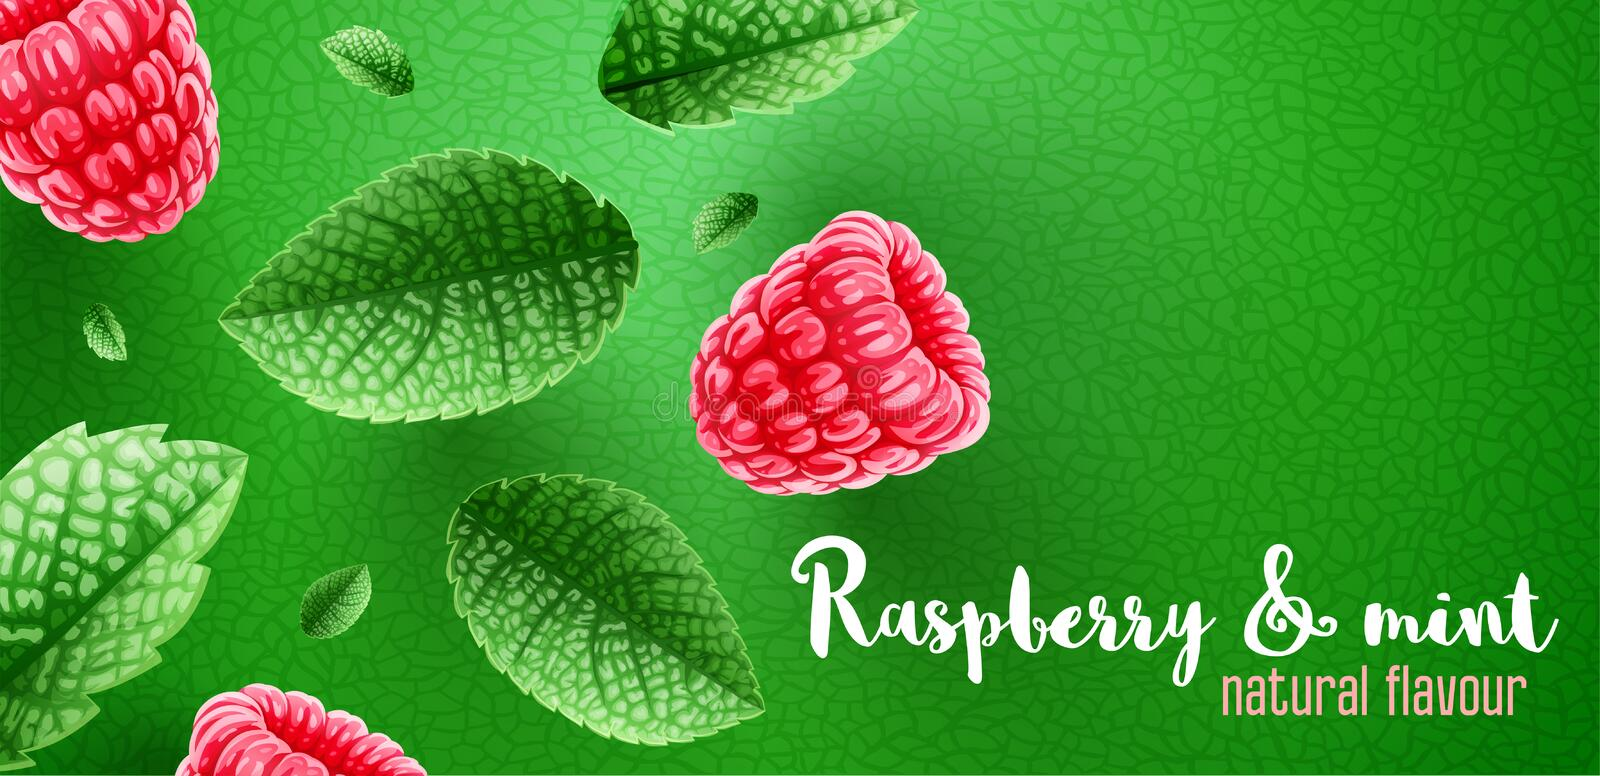 Fresh green mint leaves and raspberry on banner design with copyspace. vector illustration